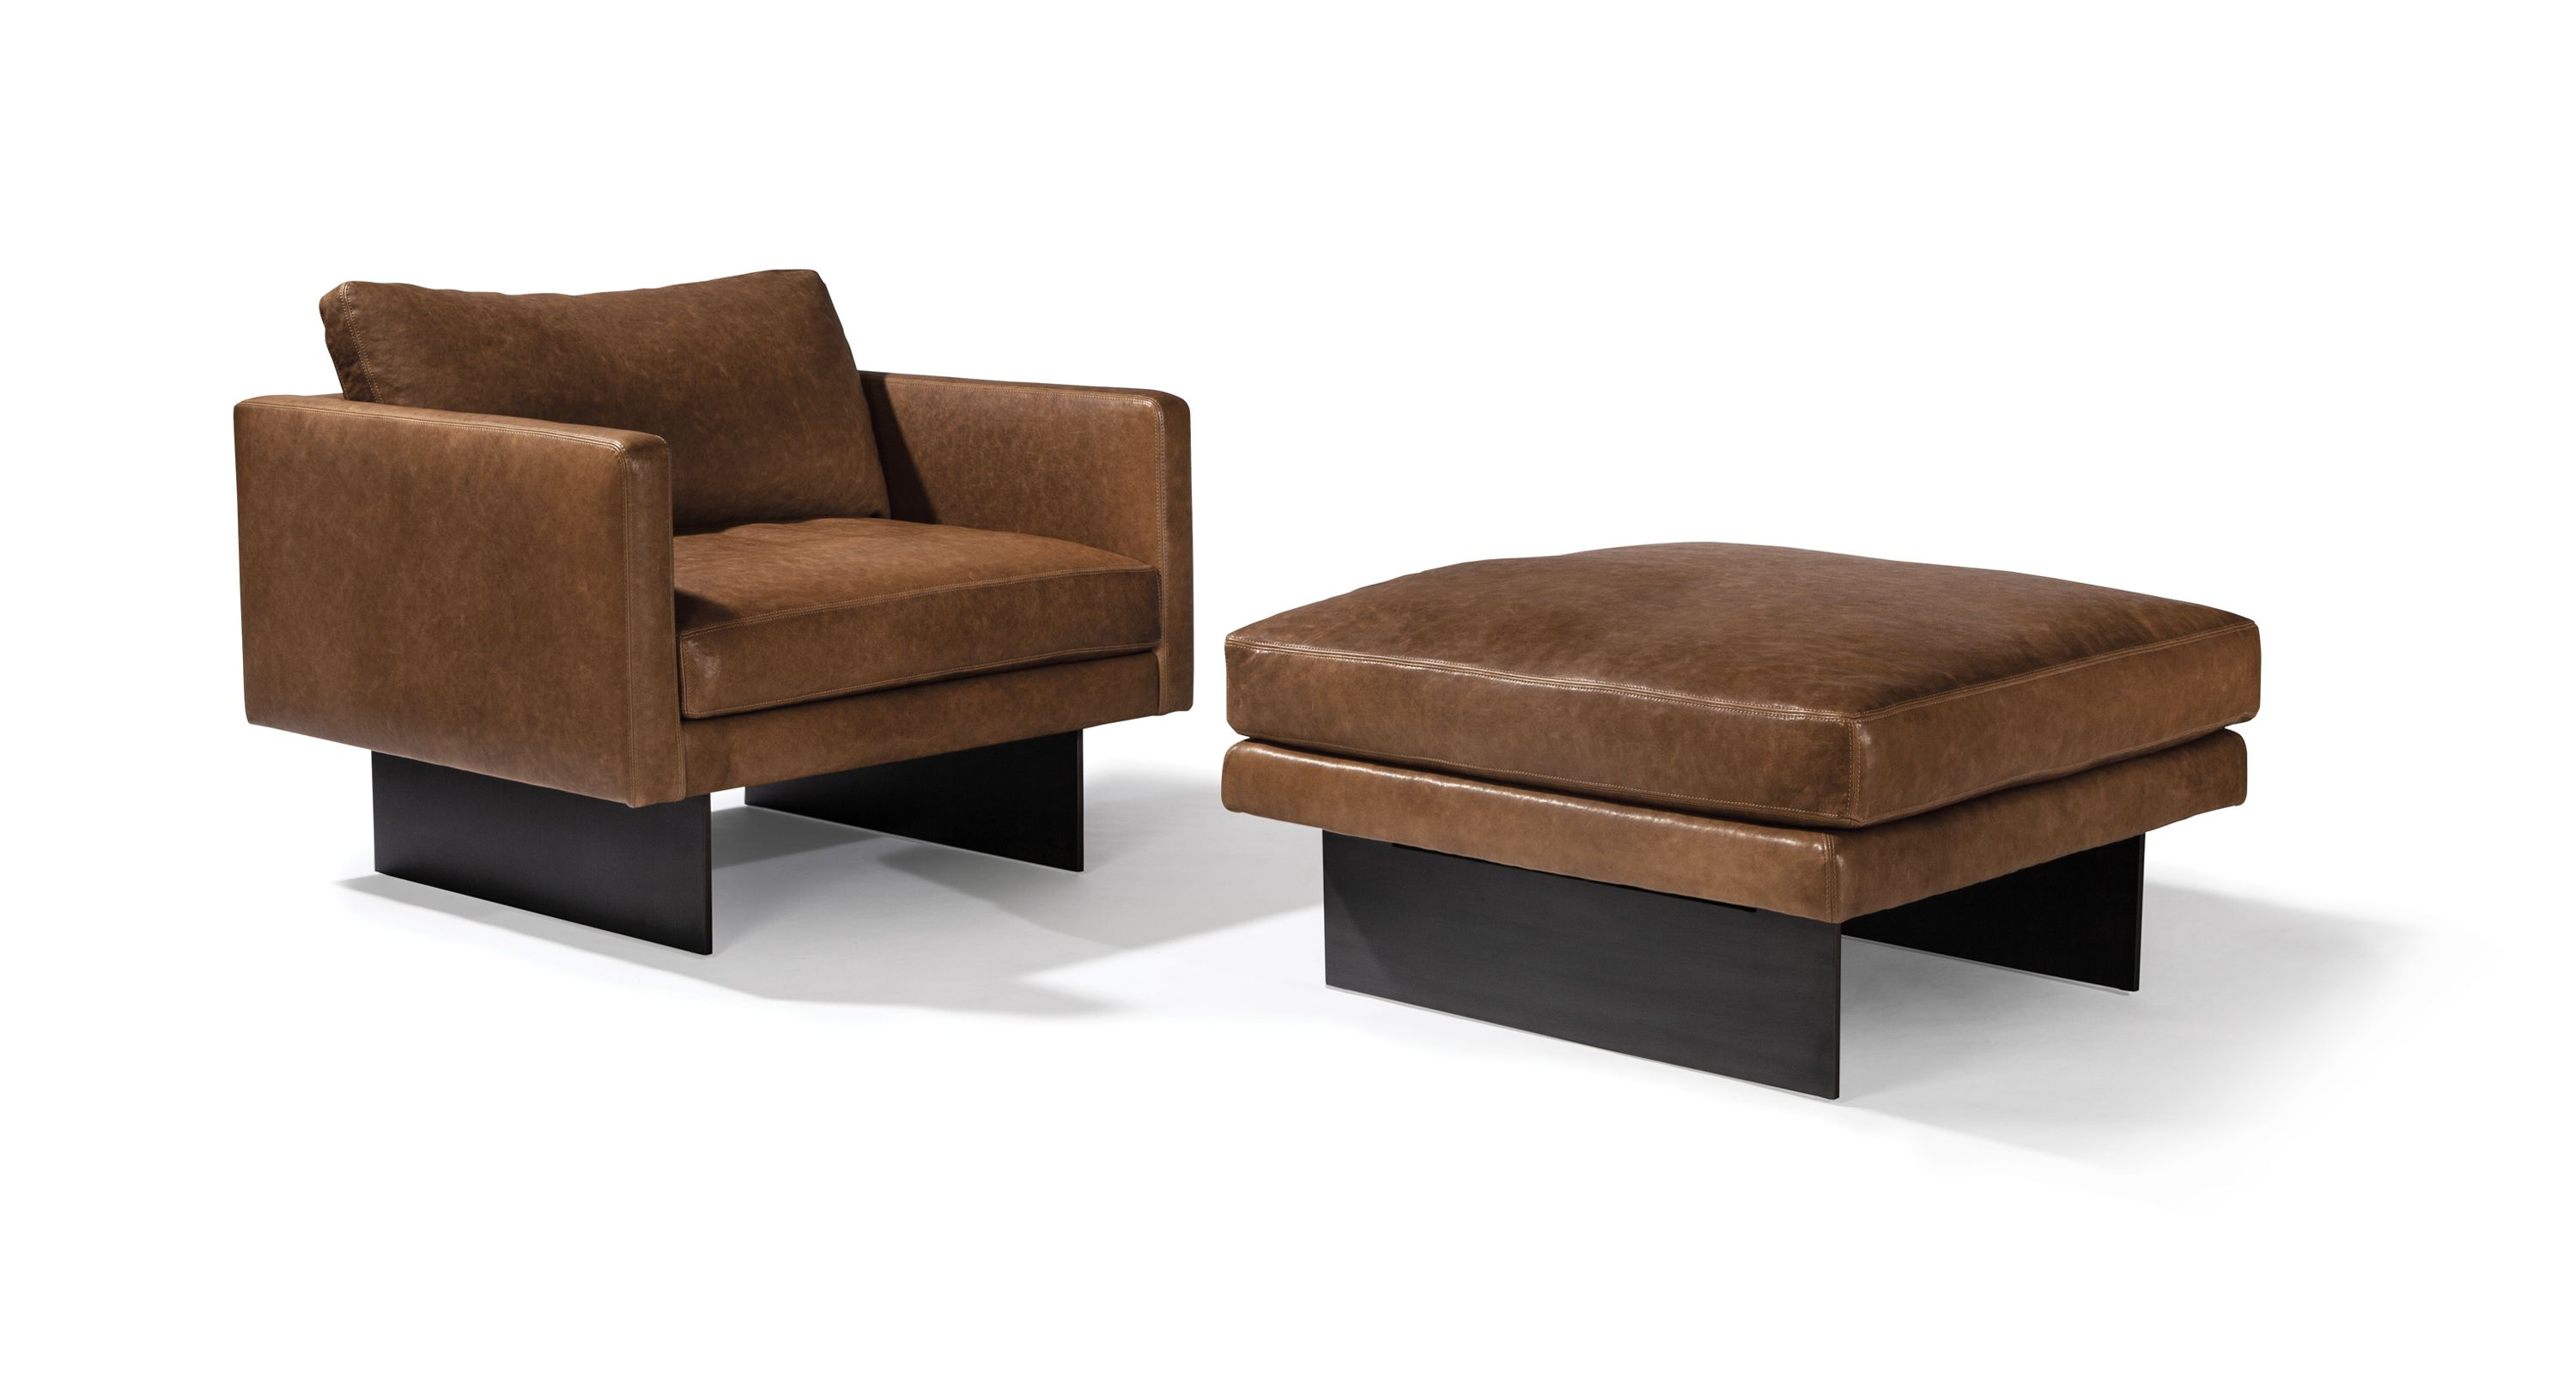 Blade Lounge Chair And Ottoman From Thayer Coggin With Images